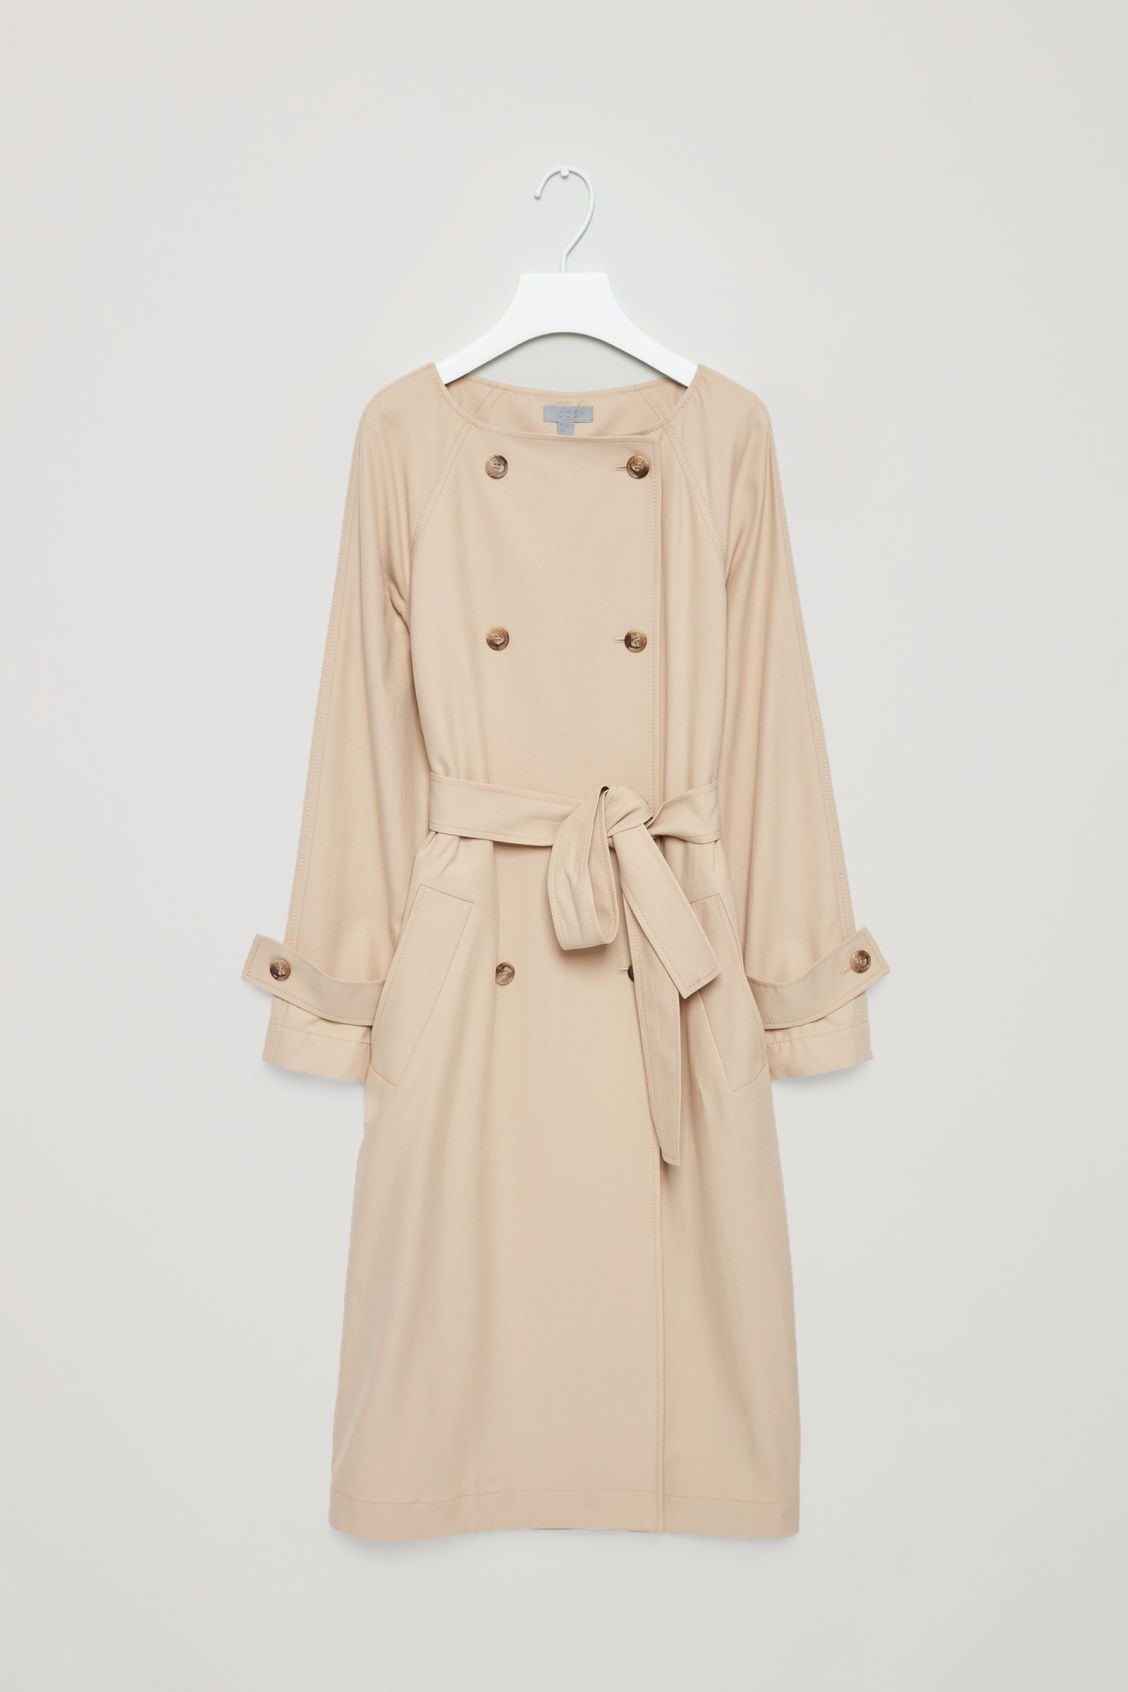 Cos green dress 2018  Front image of Cos belted trench in beige  Cos Favourites